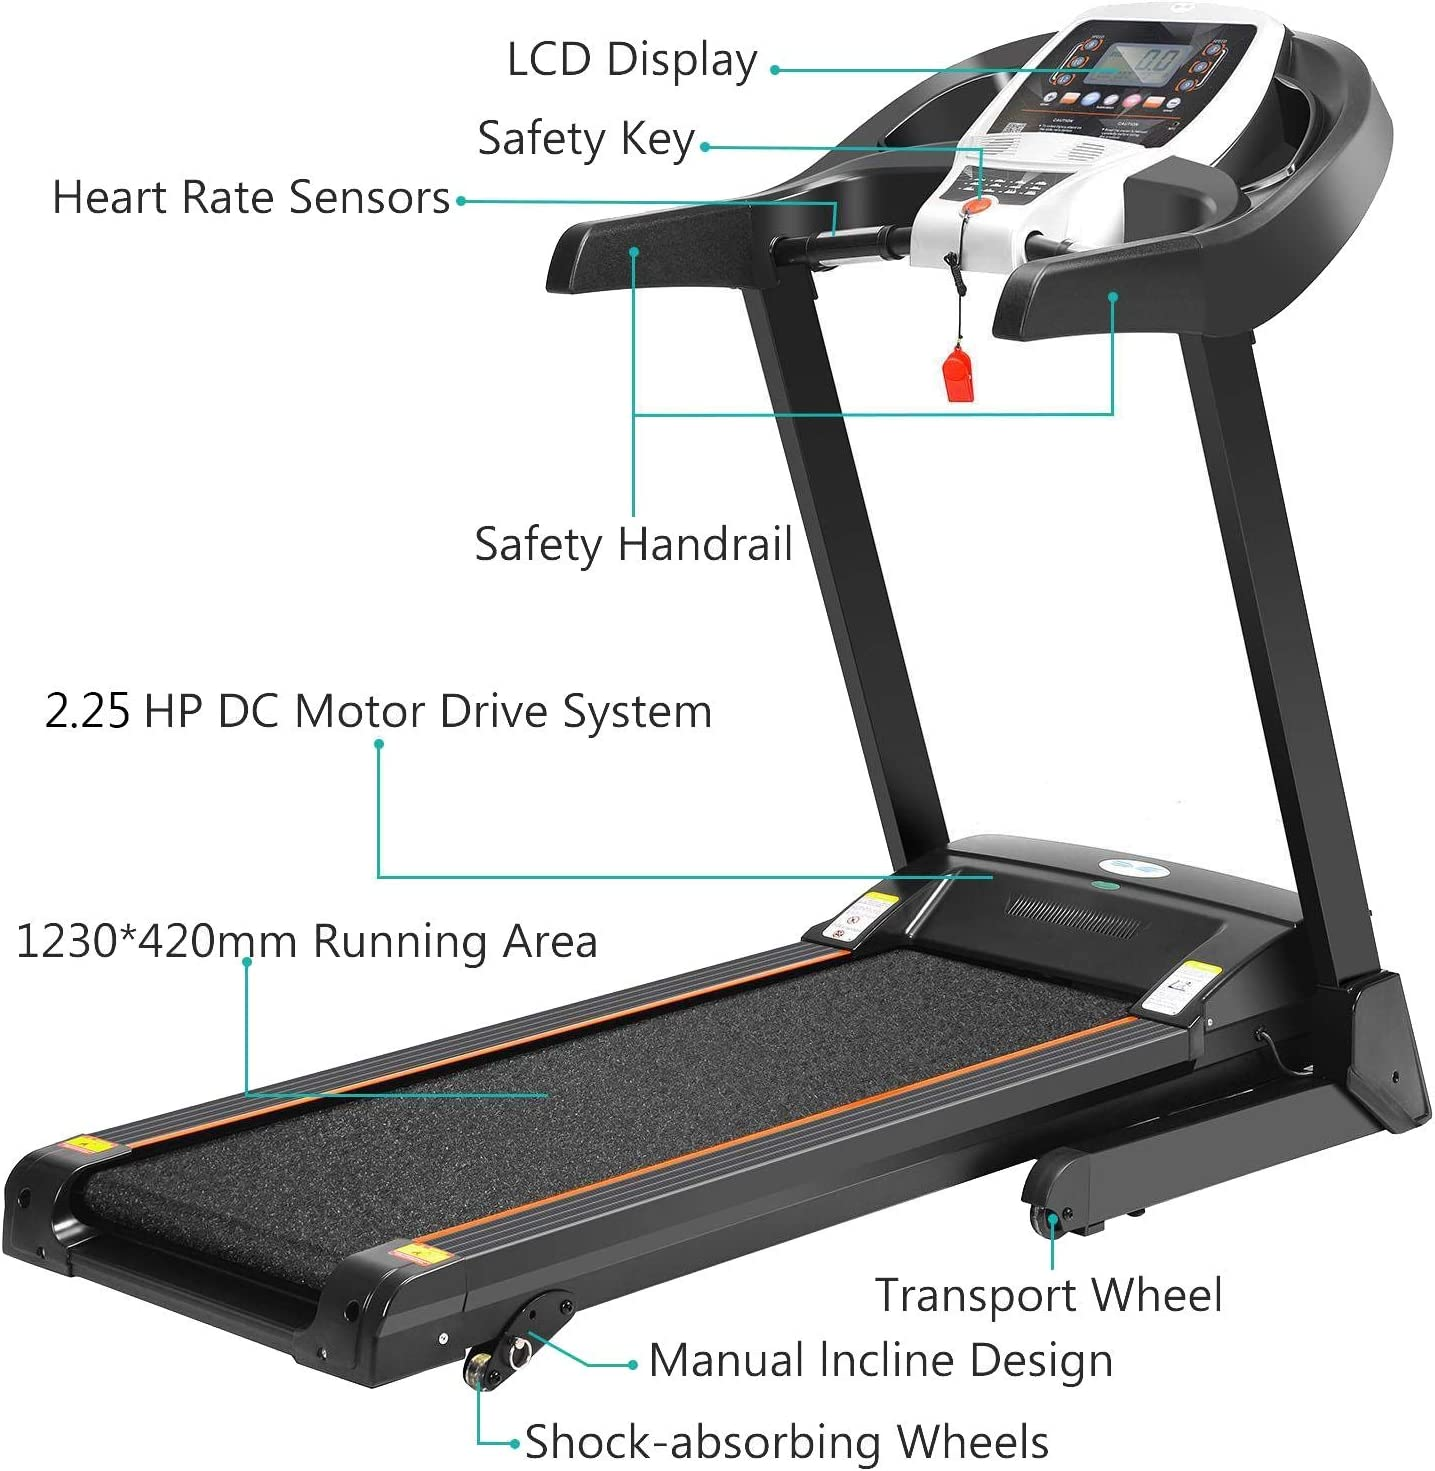 MaxKare Electric Folding Treadmill Running Machine 2.5HP Power 8.5MHP Speed 12-Level Auto Incline Adjustment with Pre-Set Training Programs Large LCD Display Cup Holder for Home Use